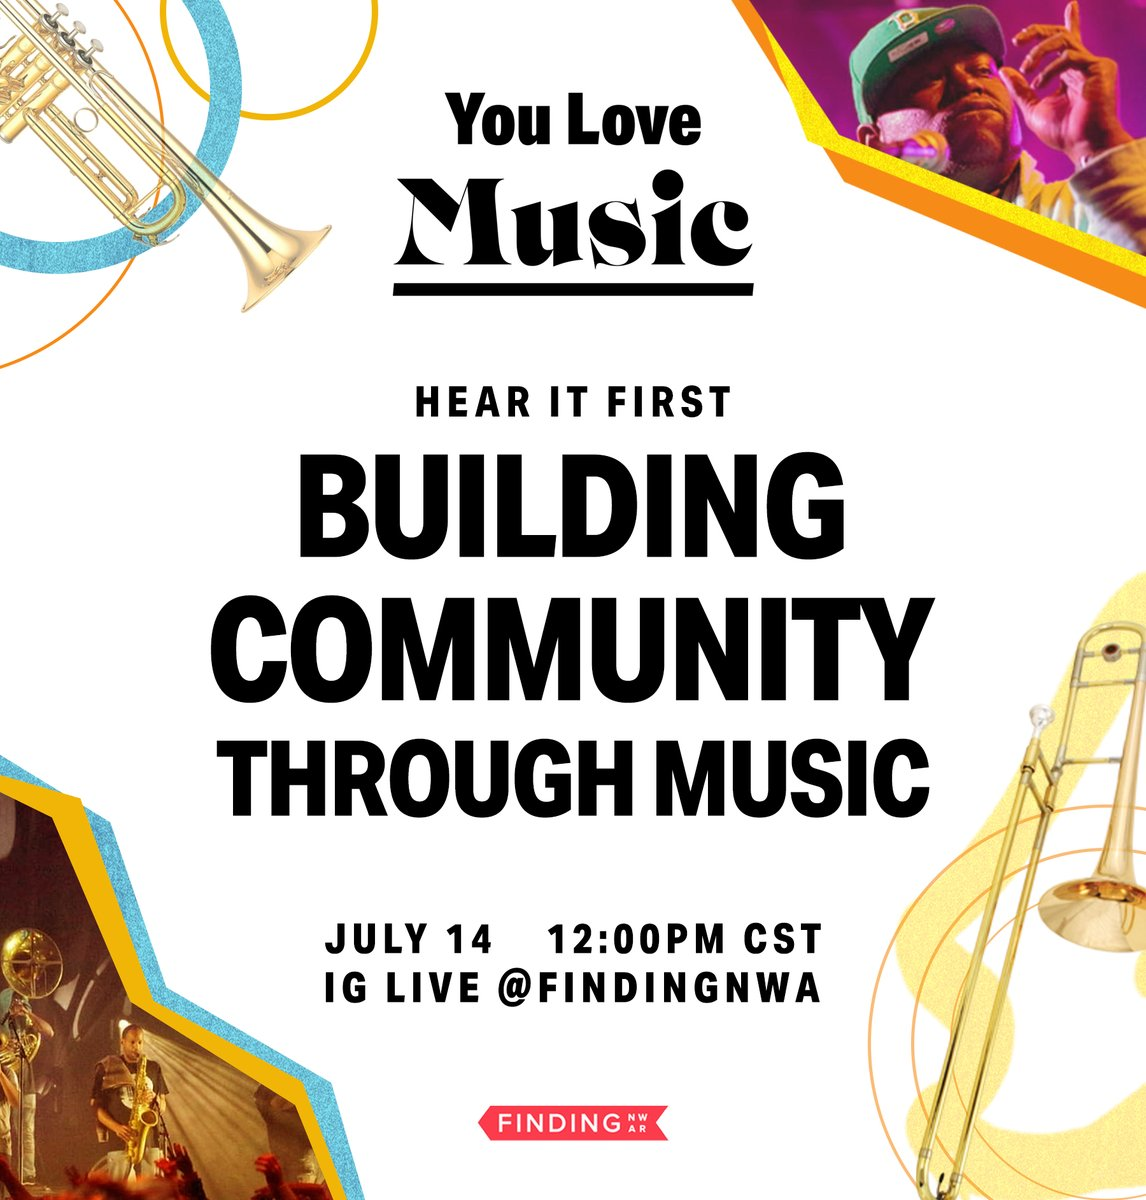 Join @findingnwa today at 12 p.m. CST for the next event in the You Love speaker series, an Instagram Live event on Building Community Through Music. @NWArkCouncil ow.ly/24eB50AveTq